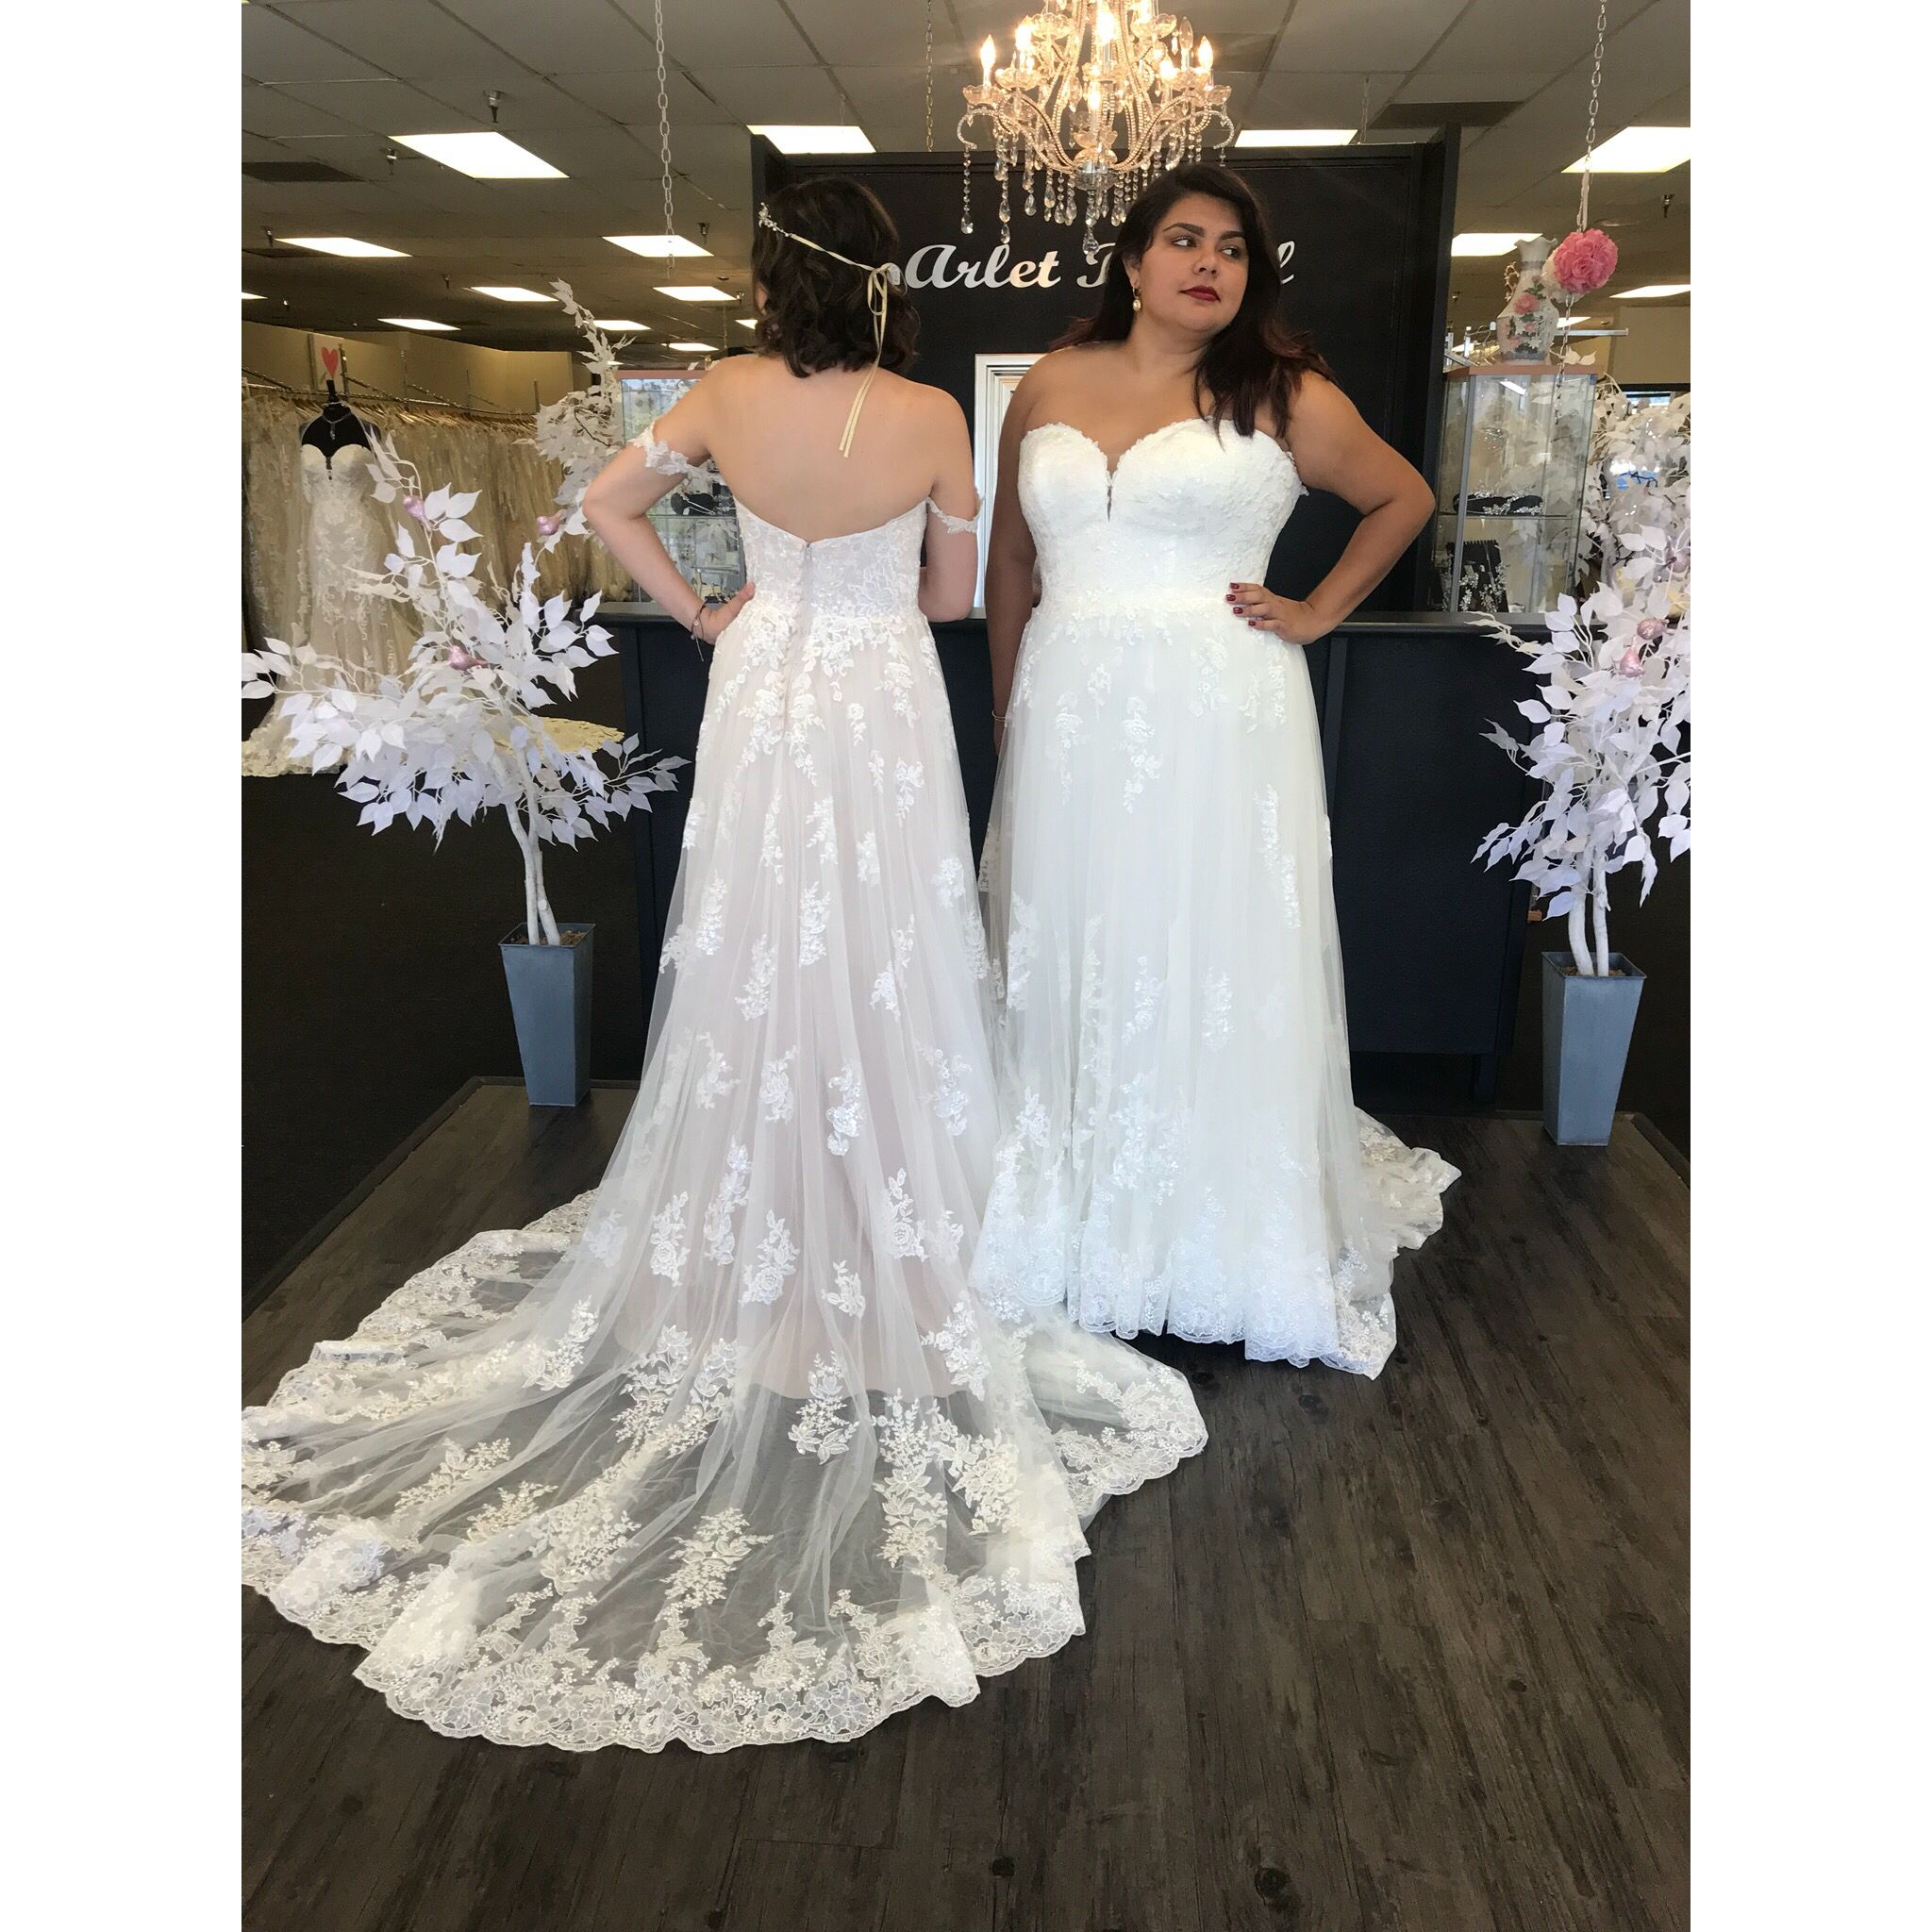 The Everybodyeverybride Collection By Essenseofaustralia Features Weddinggowns For Every Bride Regardl Designer Wedding Dresses Bridal Couture Allure Bridal,50th Anniversary Golden Wedding Anniversary Dresses